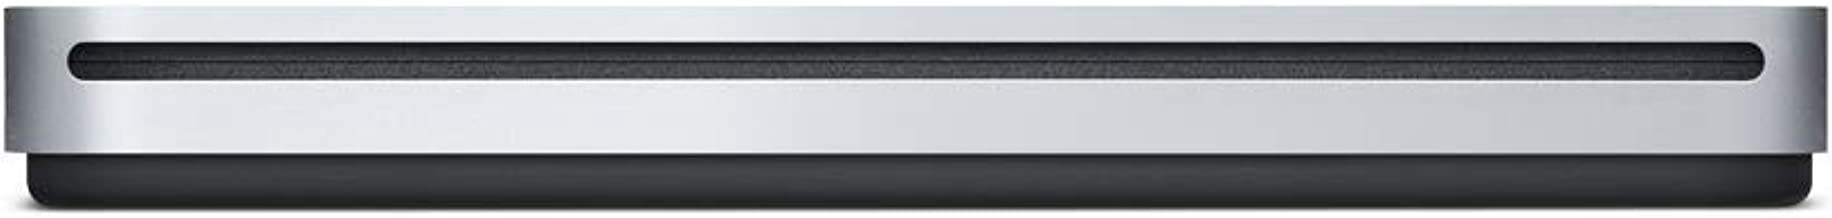 macbook pro 2013 cd drive